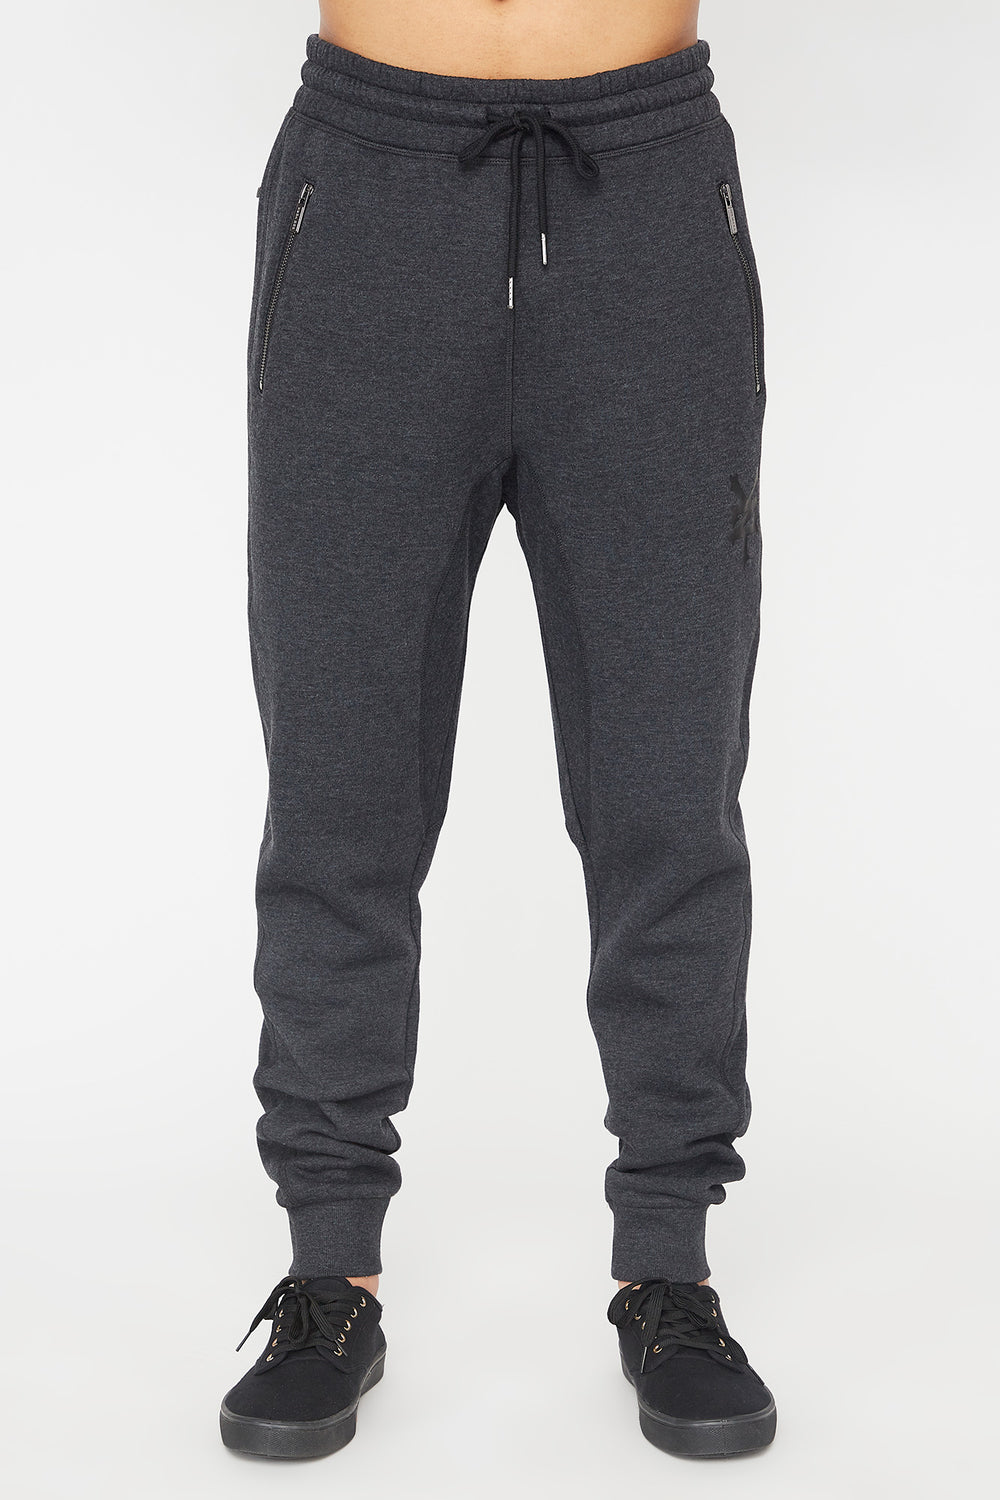 Zoo York Mens Zip Pocket Jogger Charcoal